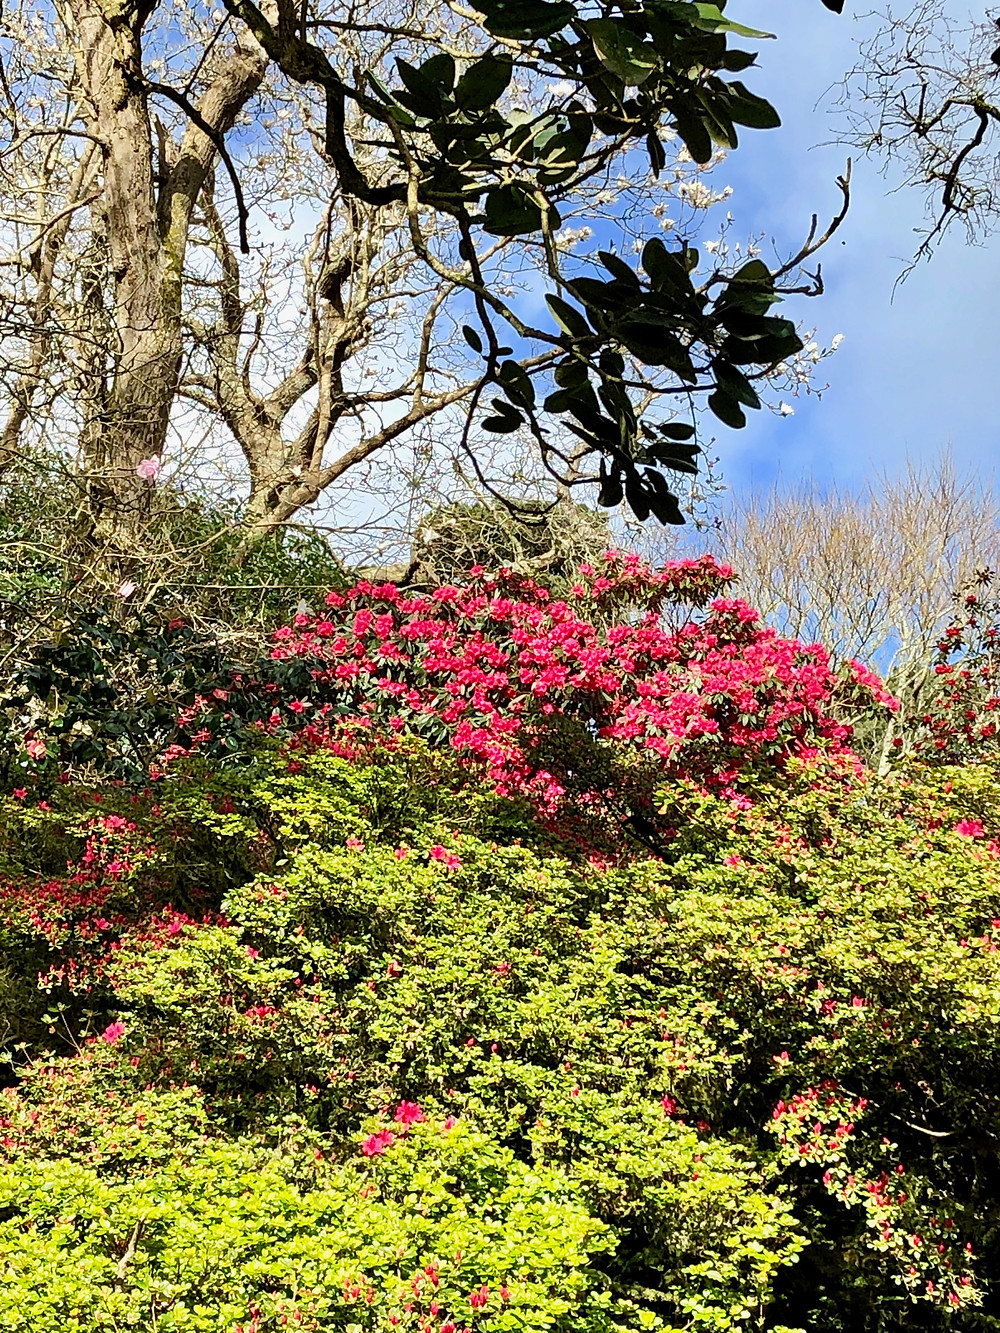 Red rhododendrons in the Cornish garden at Caerhays